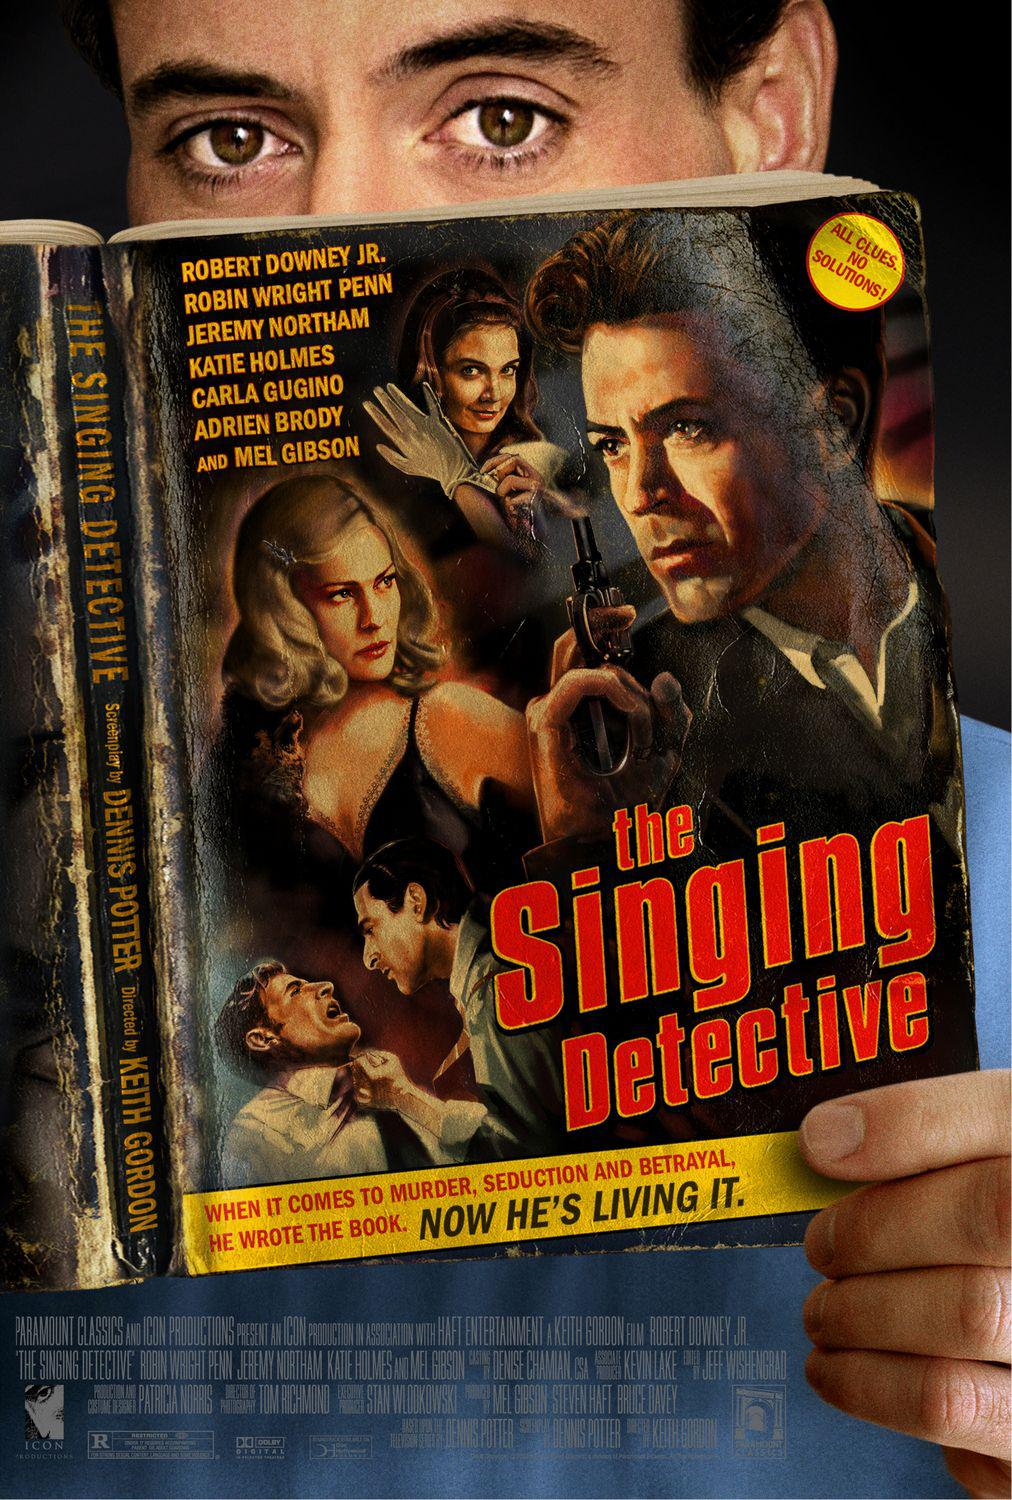 Singing Detective - Robert Downey Jr. - Robin Wright Penn - Jeremy Northam - Katie Holmes - Carla Gucino - Adrien Brody - Mel Gibson